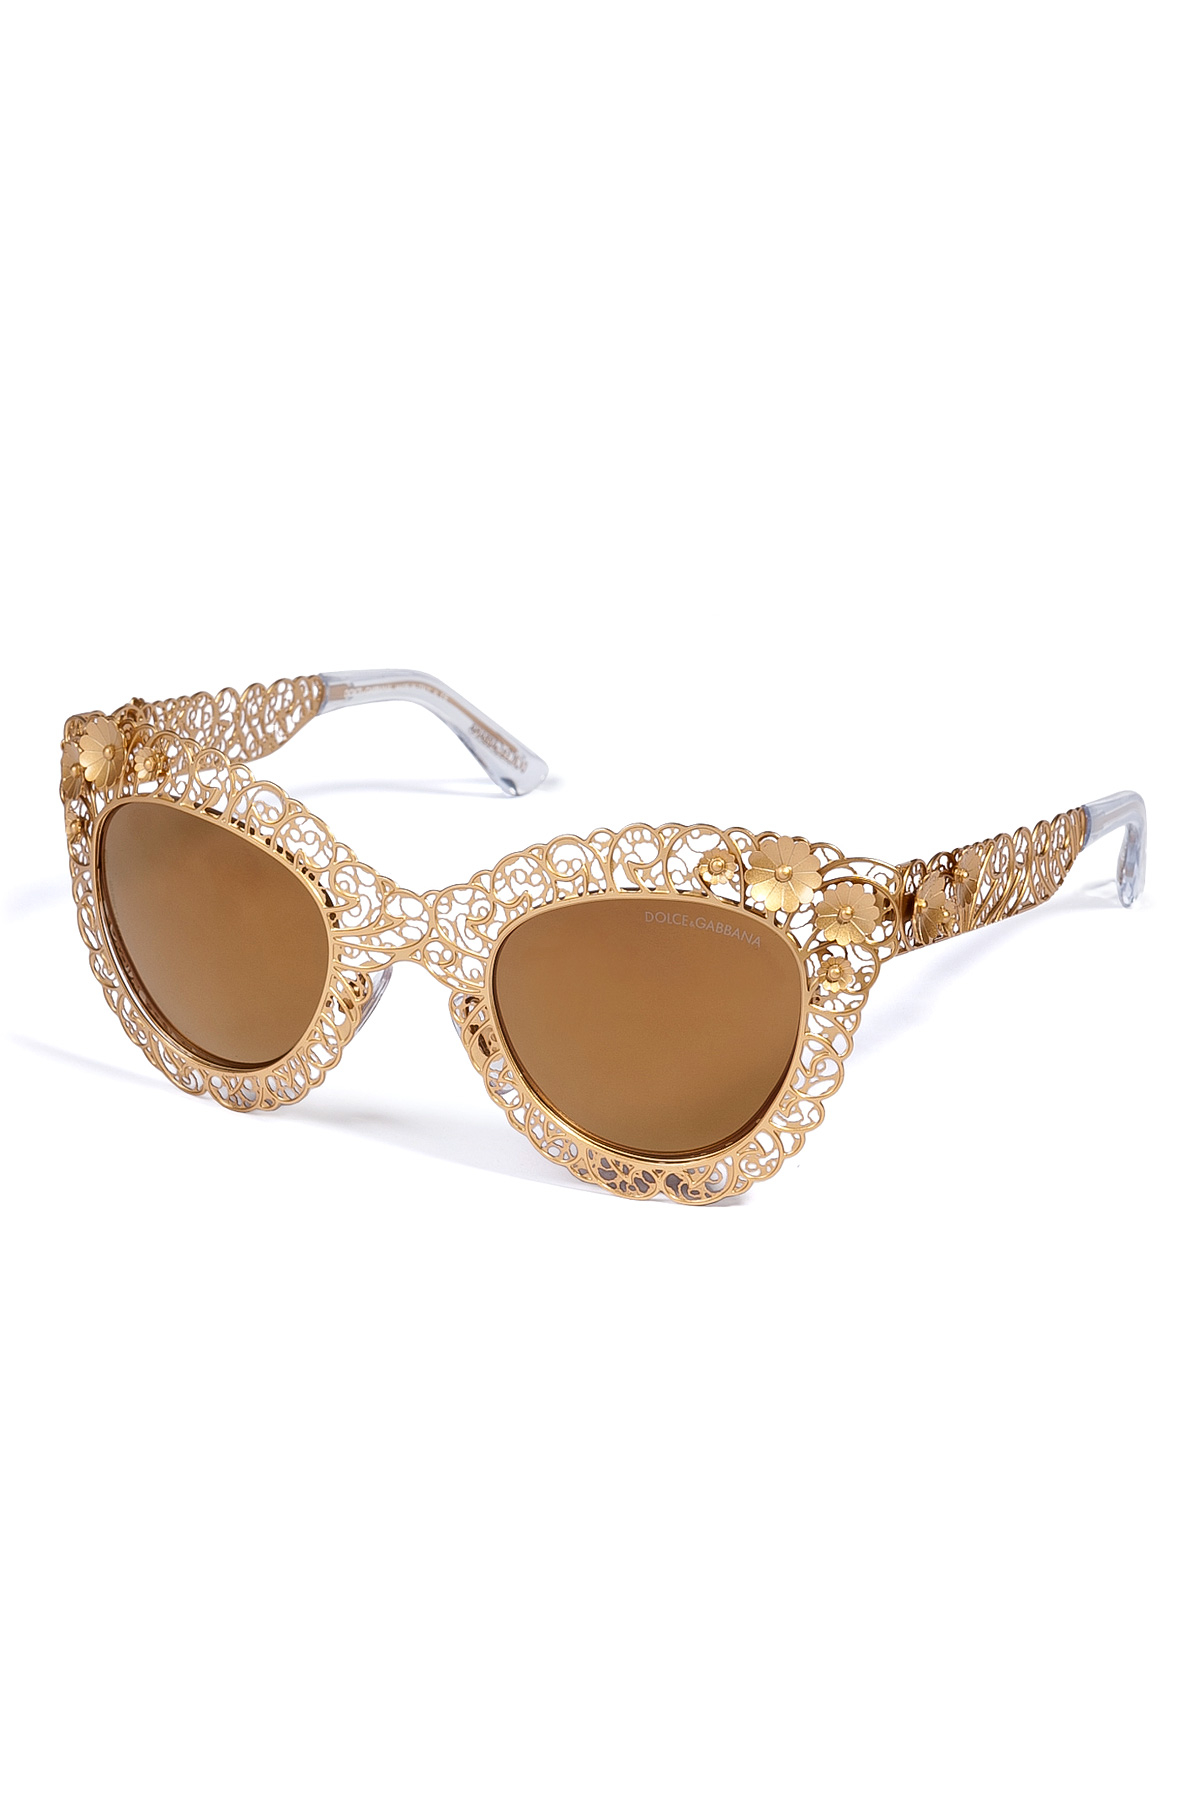 159794089e7 Dolce And Gabbana Sunglasses Baroque « Heritage Malta